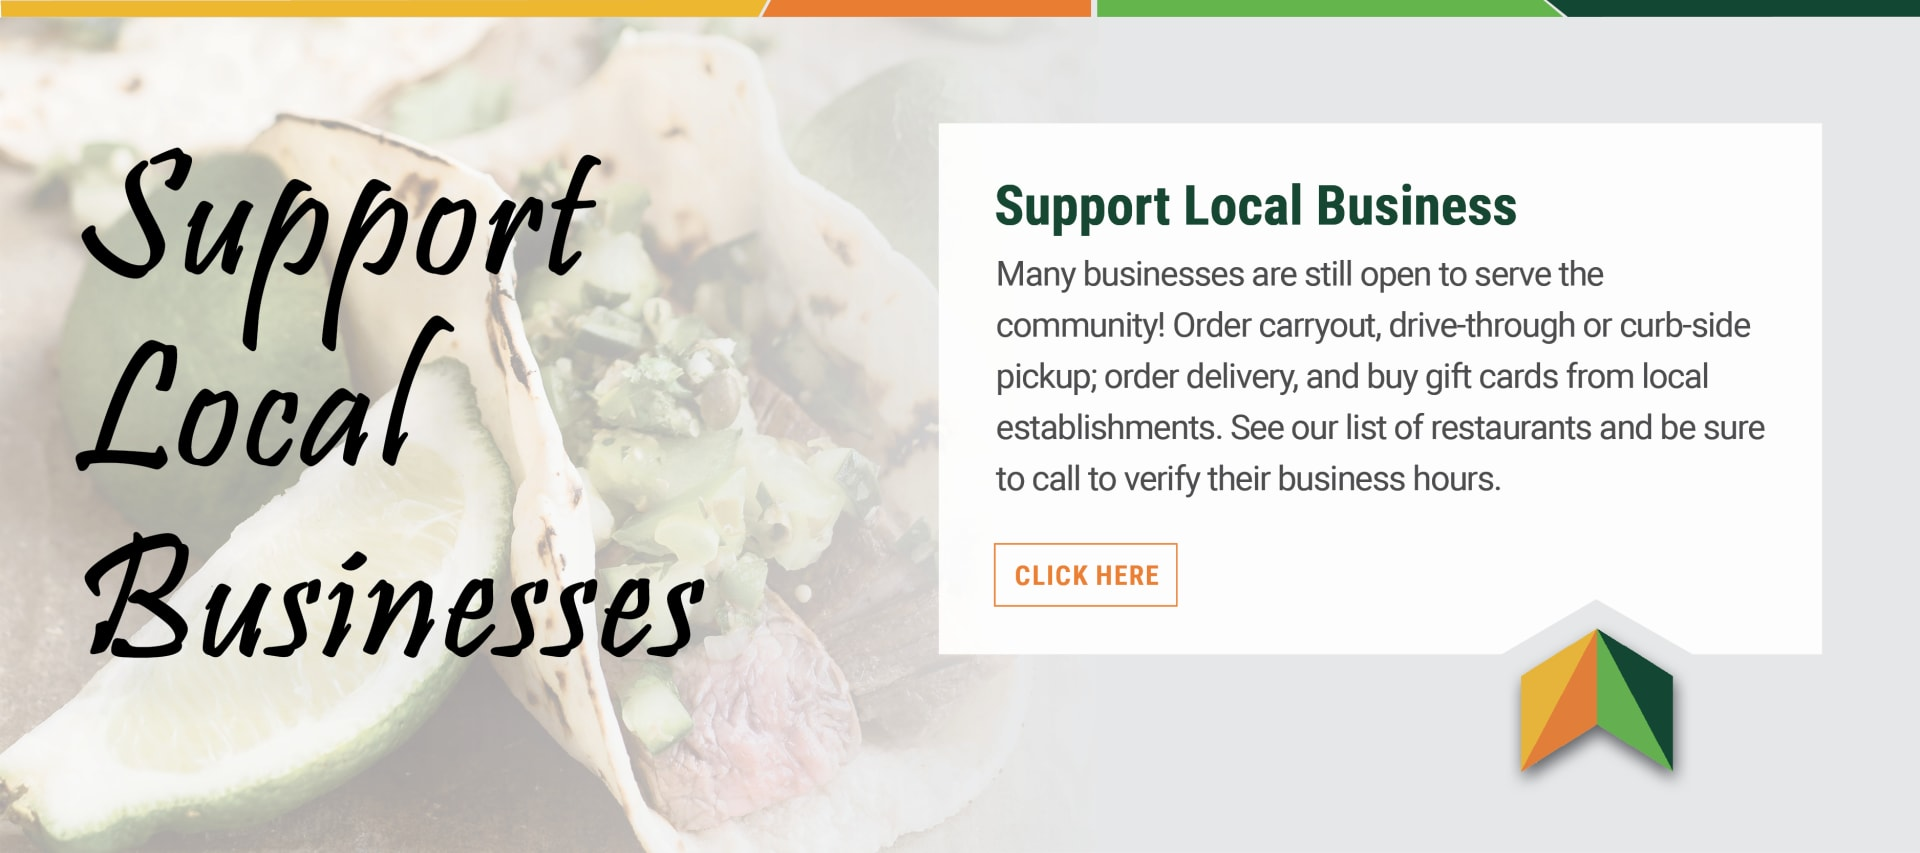 Support-Local-Businesses(1)-w1920.jpg